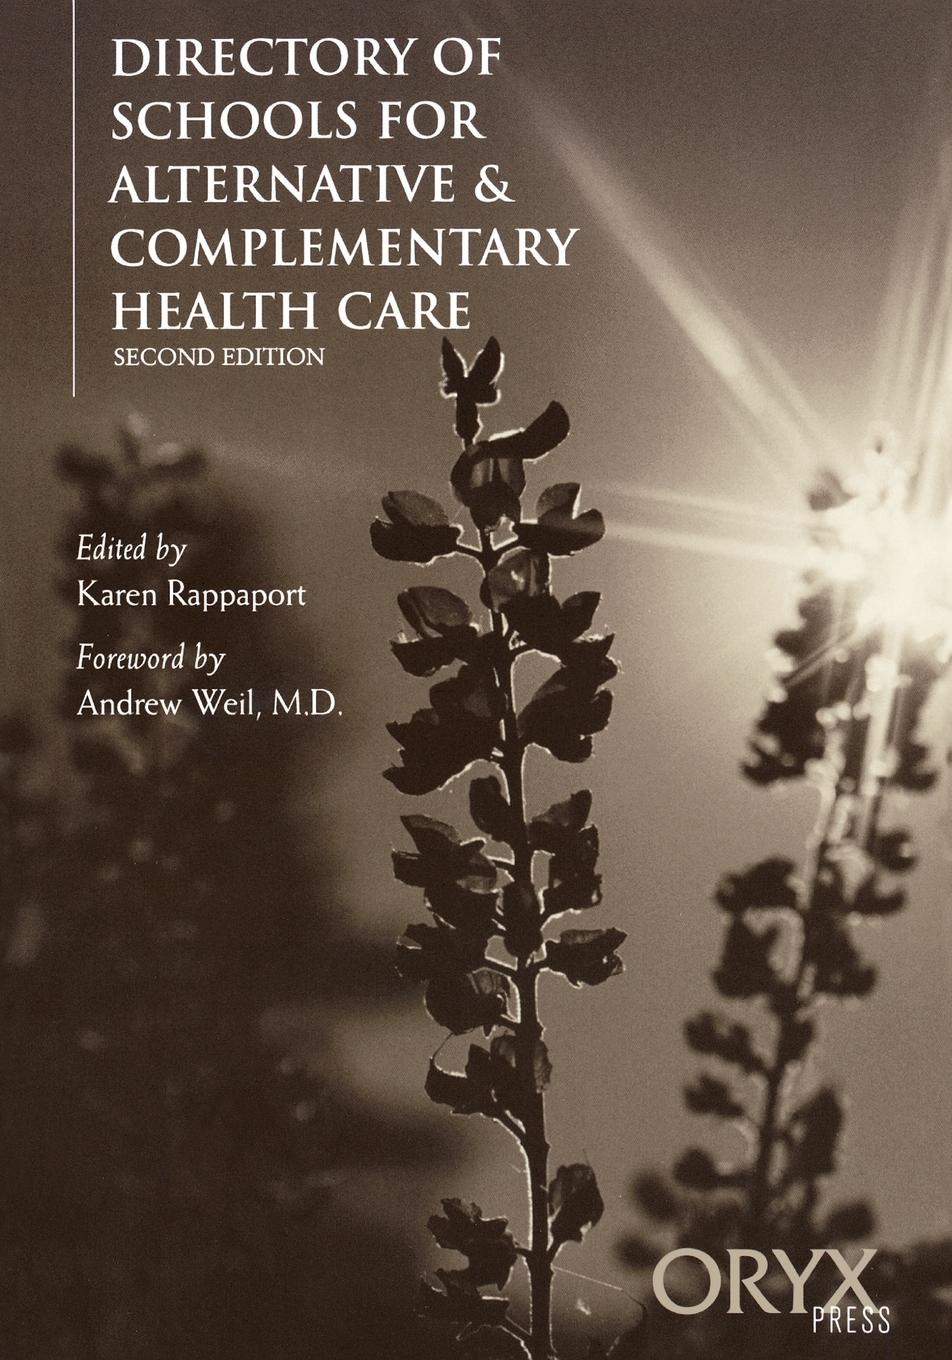 Directory of Schools for Alternative & Complementary Health Care. Second Edition janet richardson abc of complementary medicine